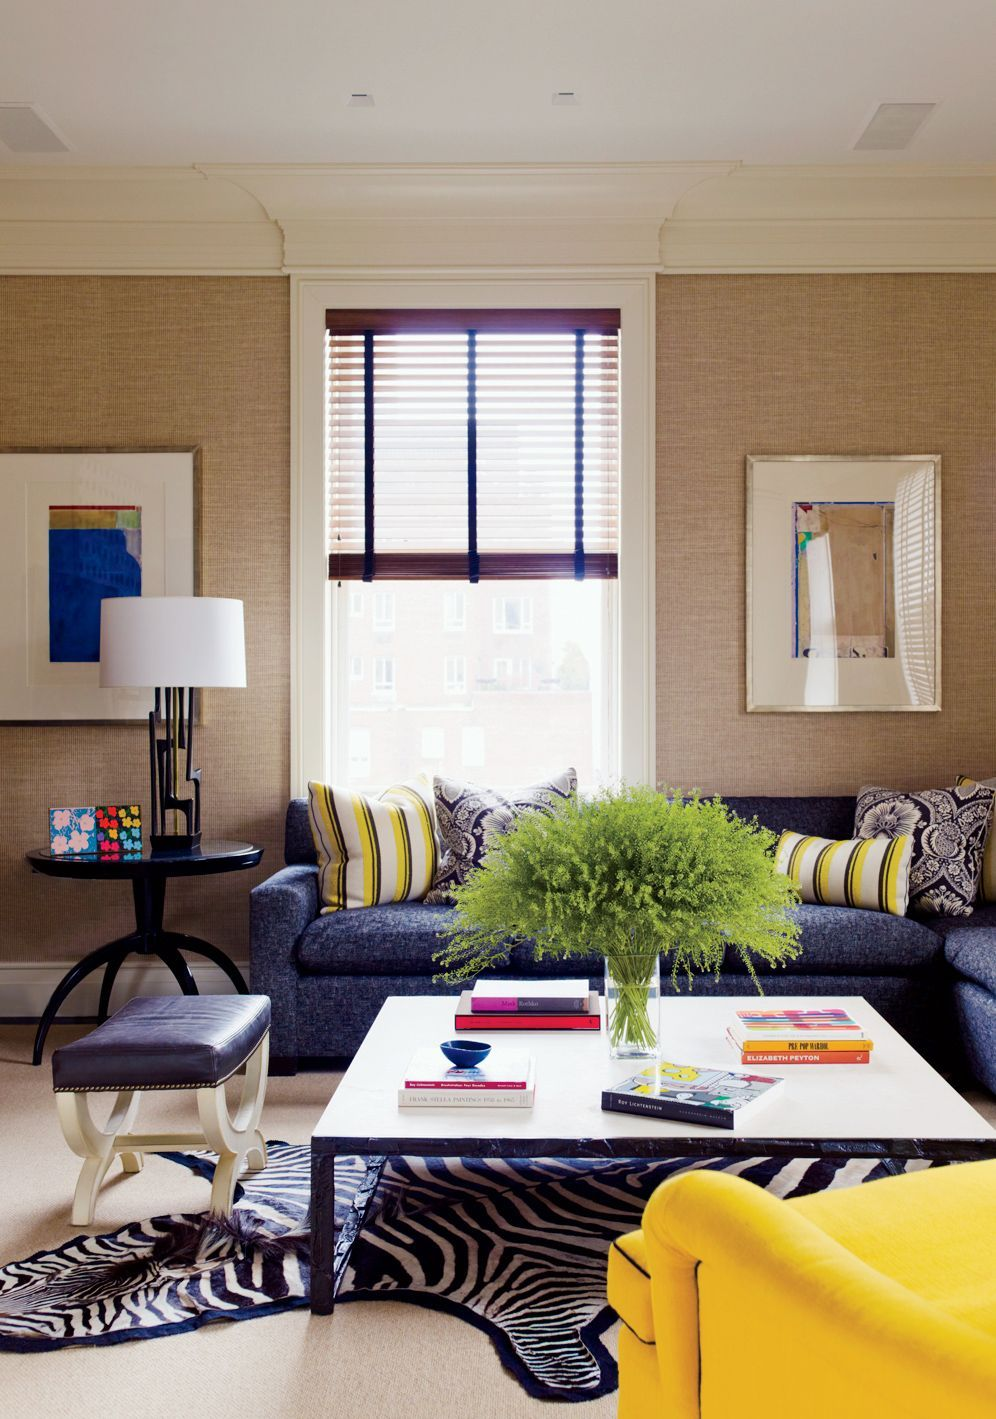 david kleinberg designs a warm and modern manhattan apartment manhattan designers Contemporary Living Room by David Kleinberg Design Associates and David  Kleinberg Design Associates in New York, New York